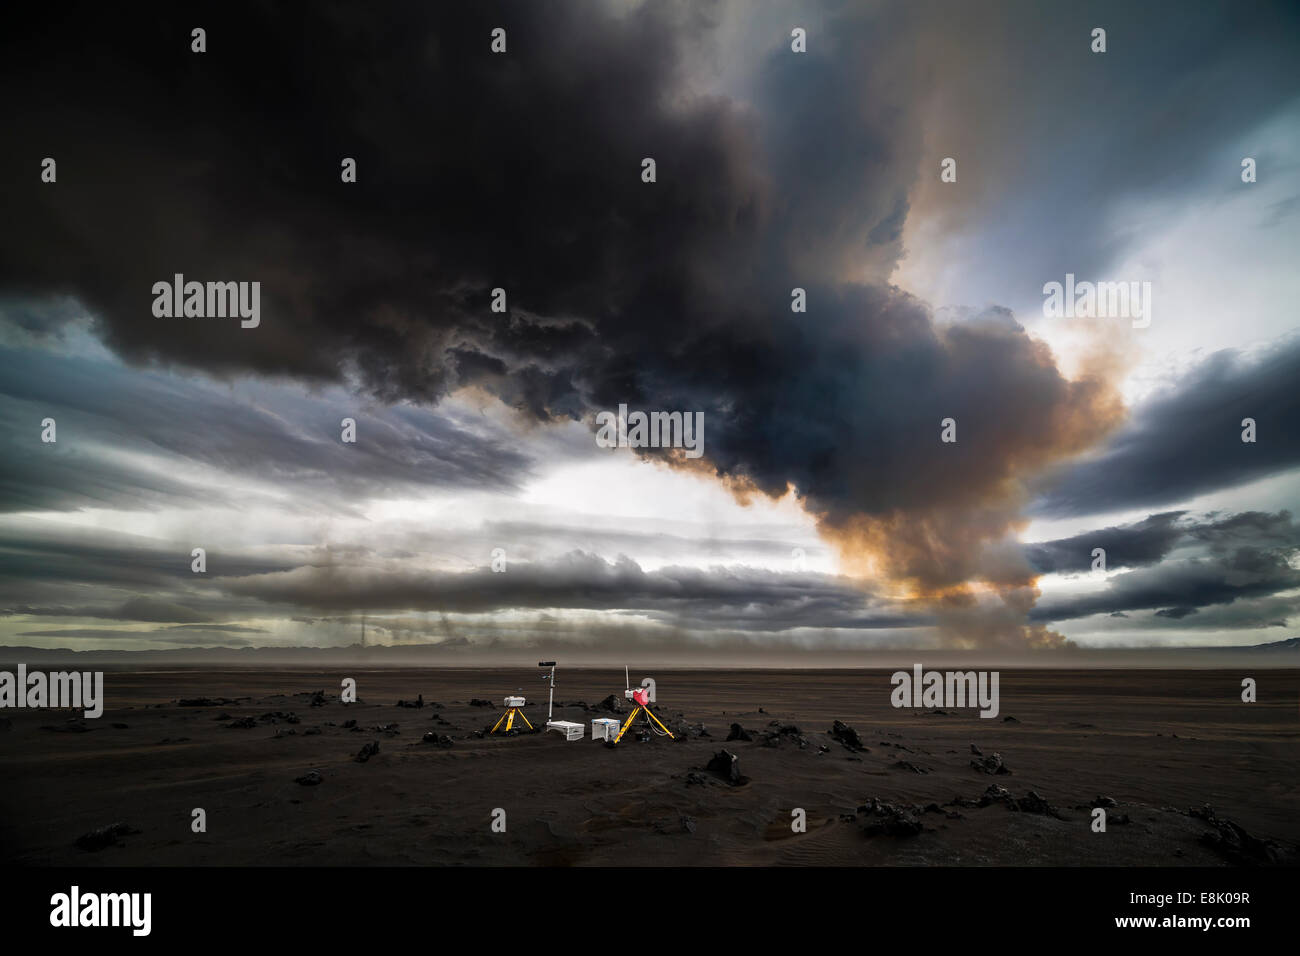 Scientific equipment-Volcanic Plumes with toxic gases, Holuhraun Fissure Eruption, Iceland - Stock Image